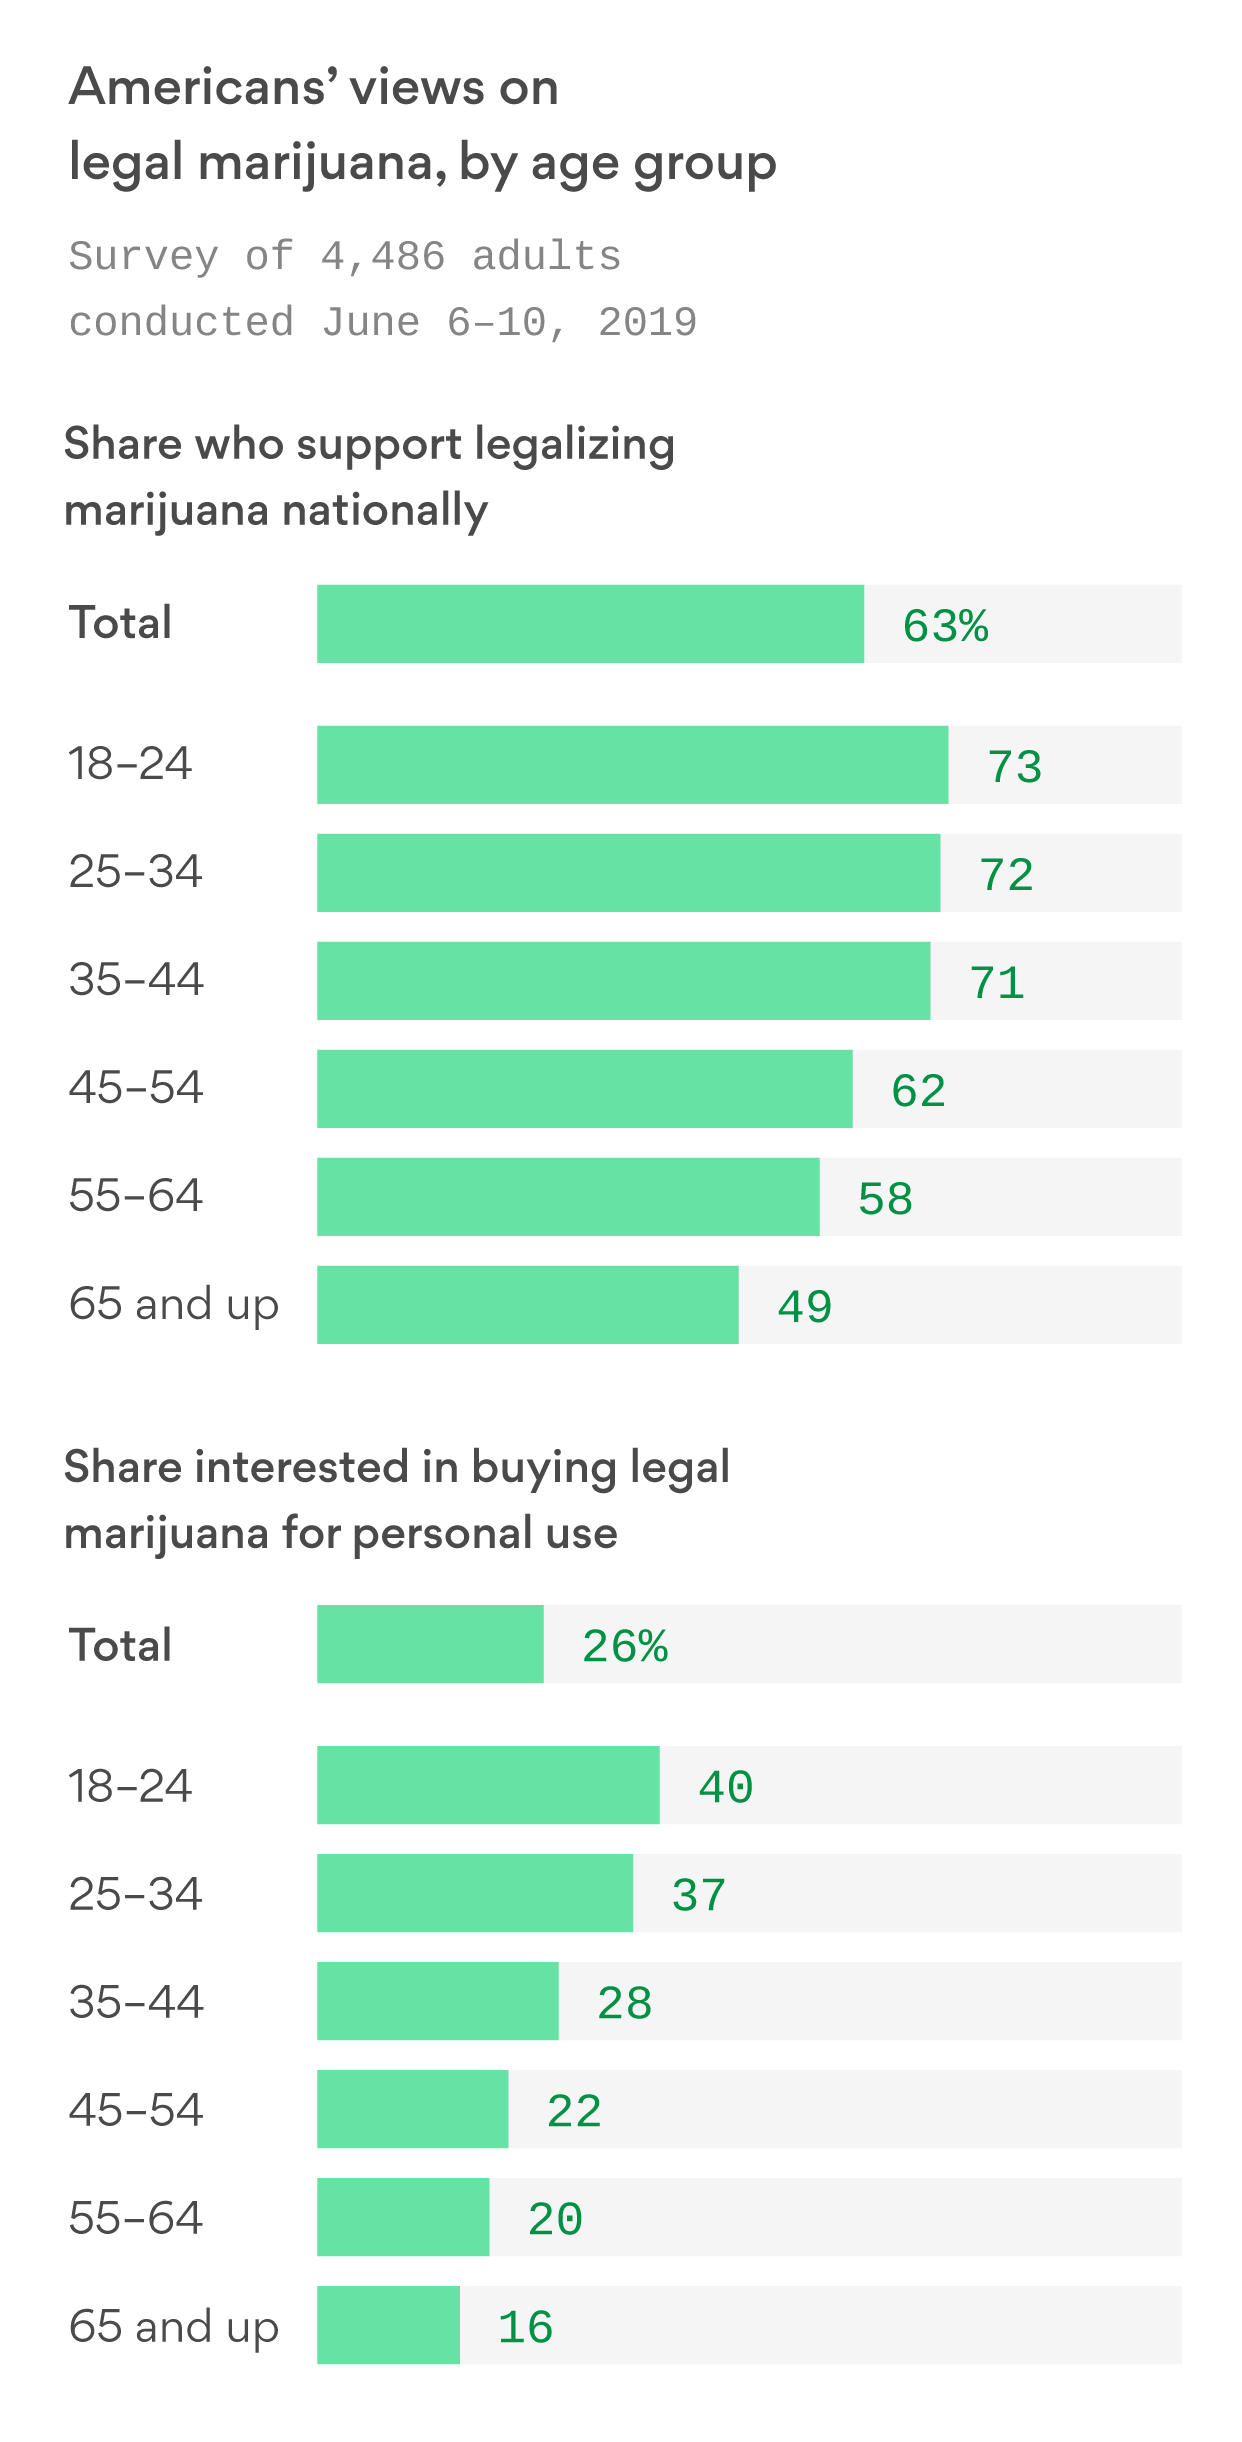 Poll: 63% of Americans support legalizing marijuana